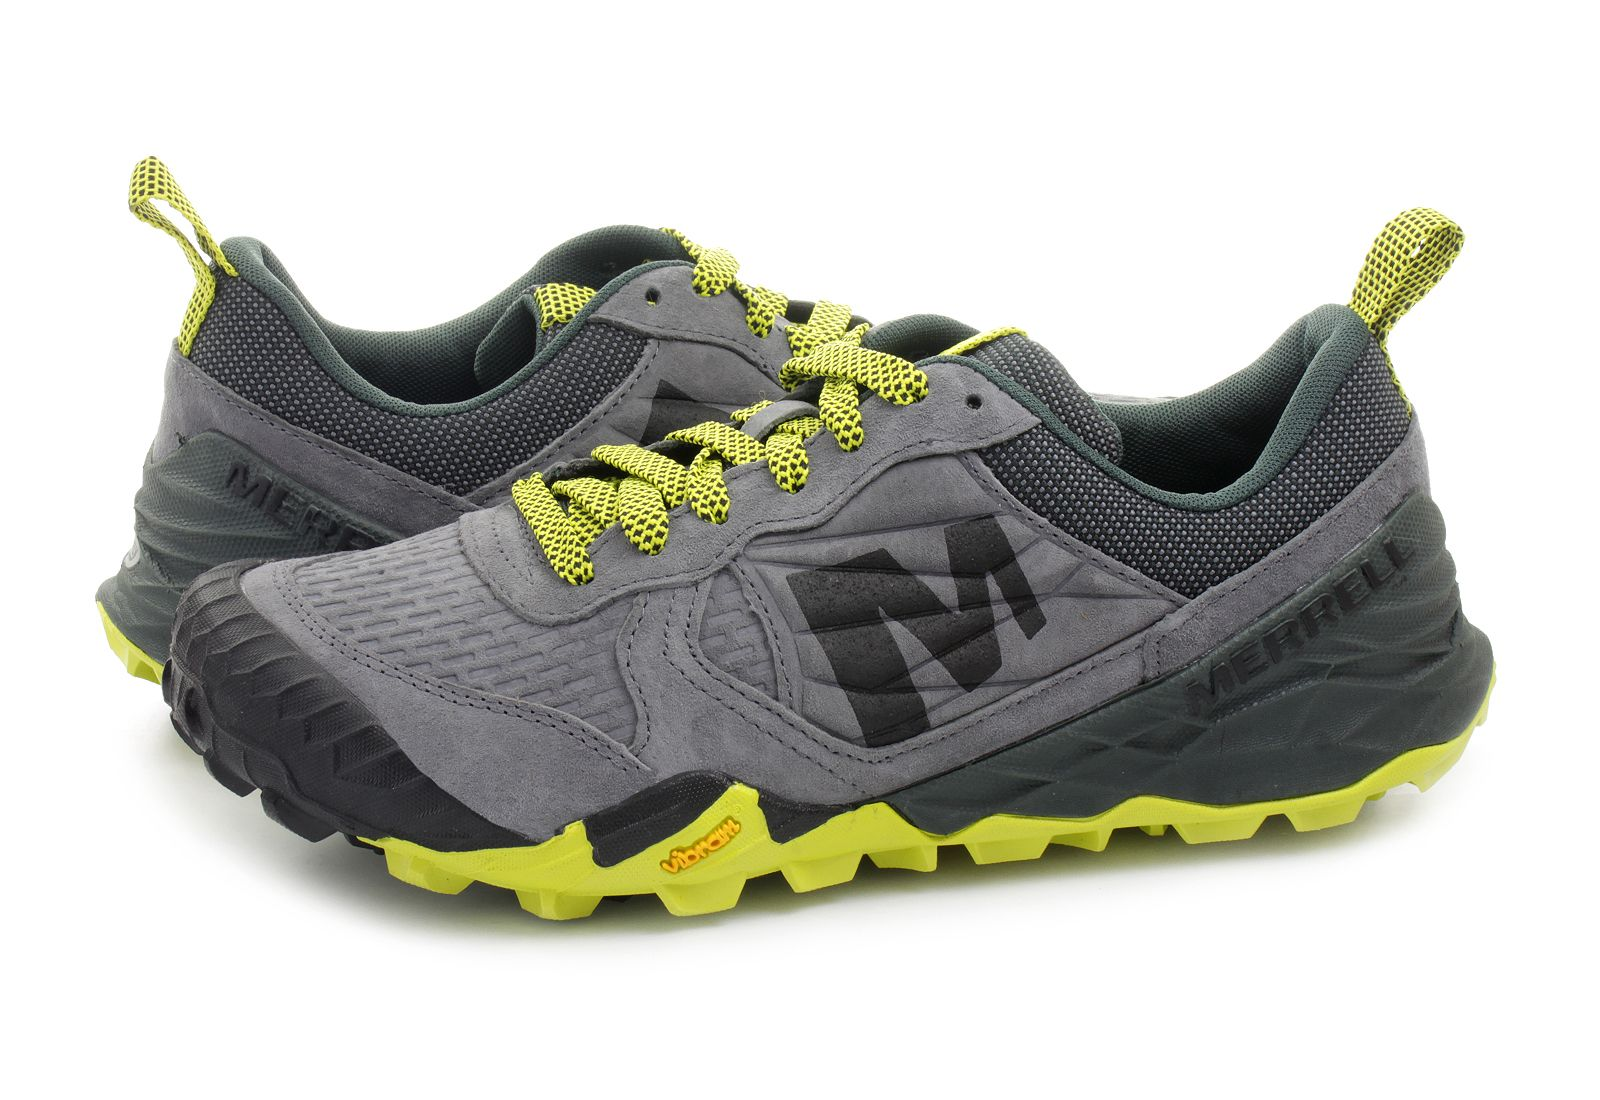 8d388c7b1753 Merrell Cipő - All Out Terra Turf - J23643-gry - Office Shoes ...